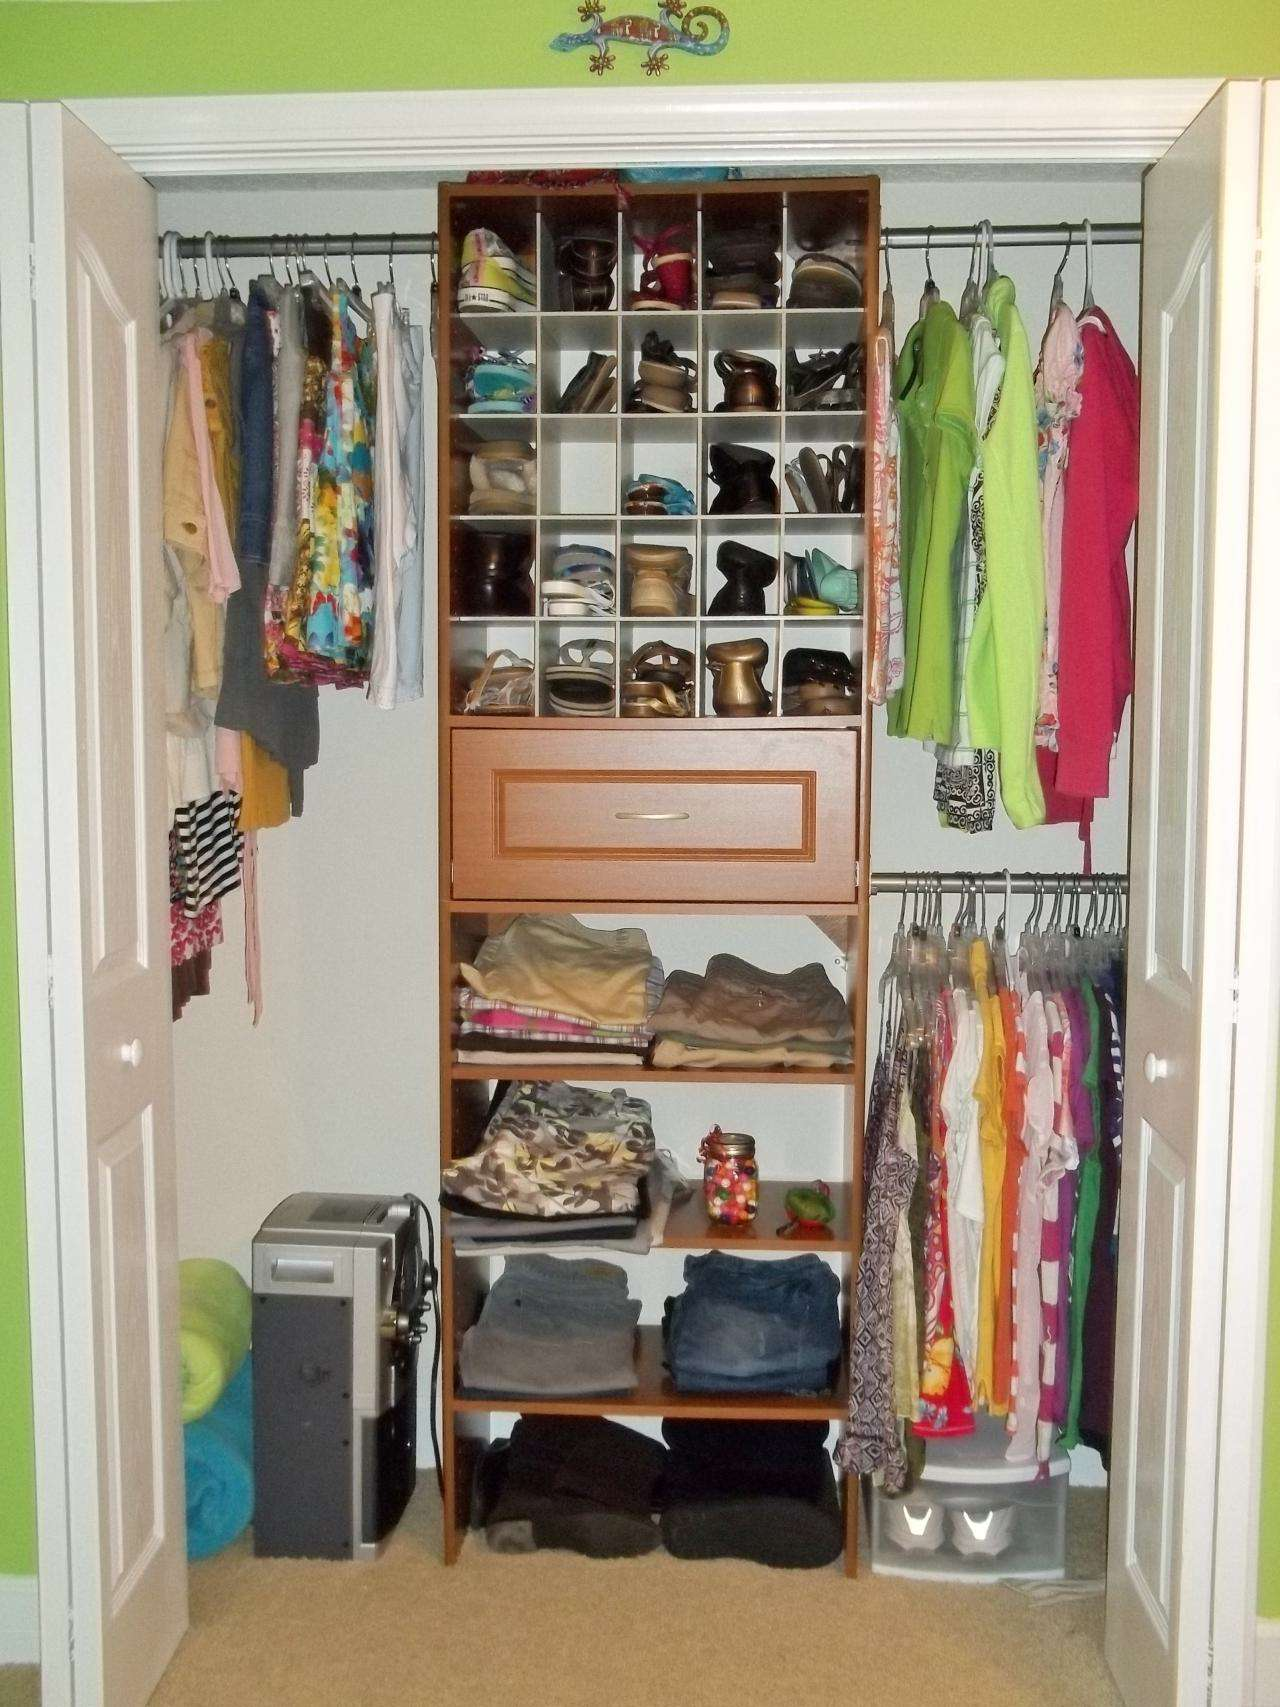 Small closet organization ideas small bedroom closet design ideas 06 small room decorating ideas - Clothing storage ideas for small spaces decoration ...